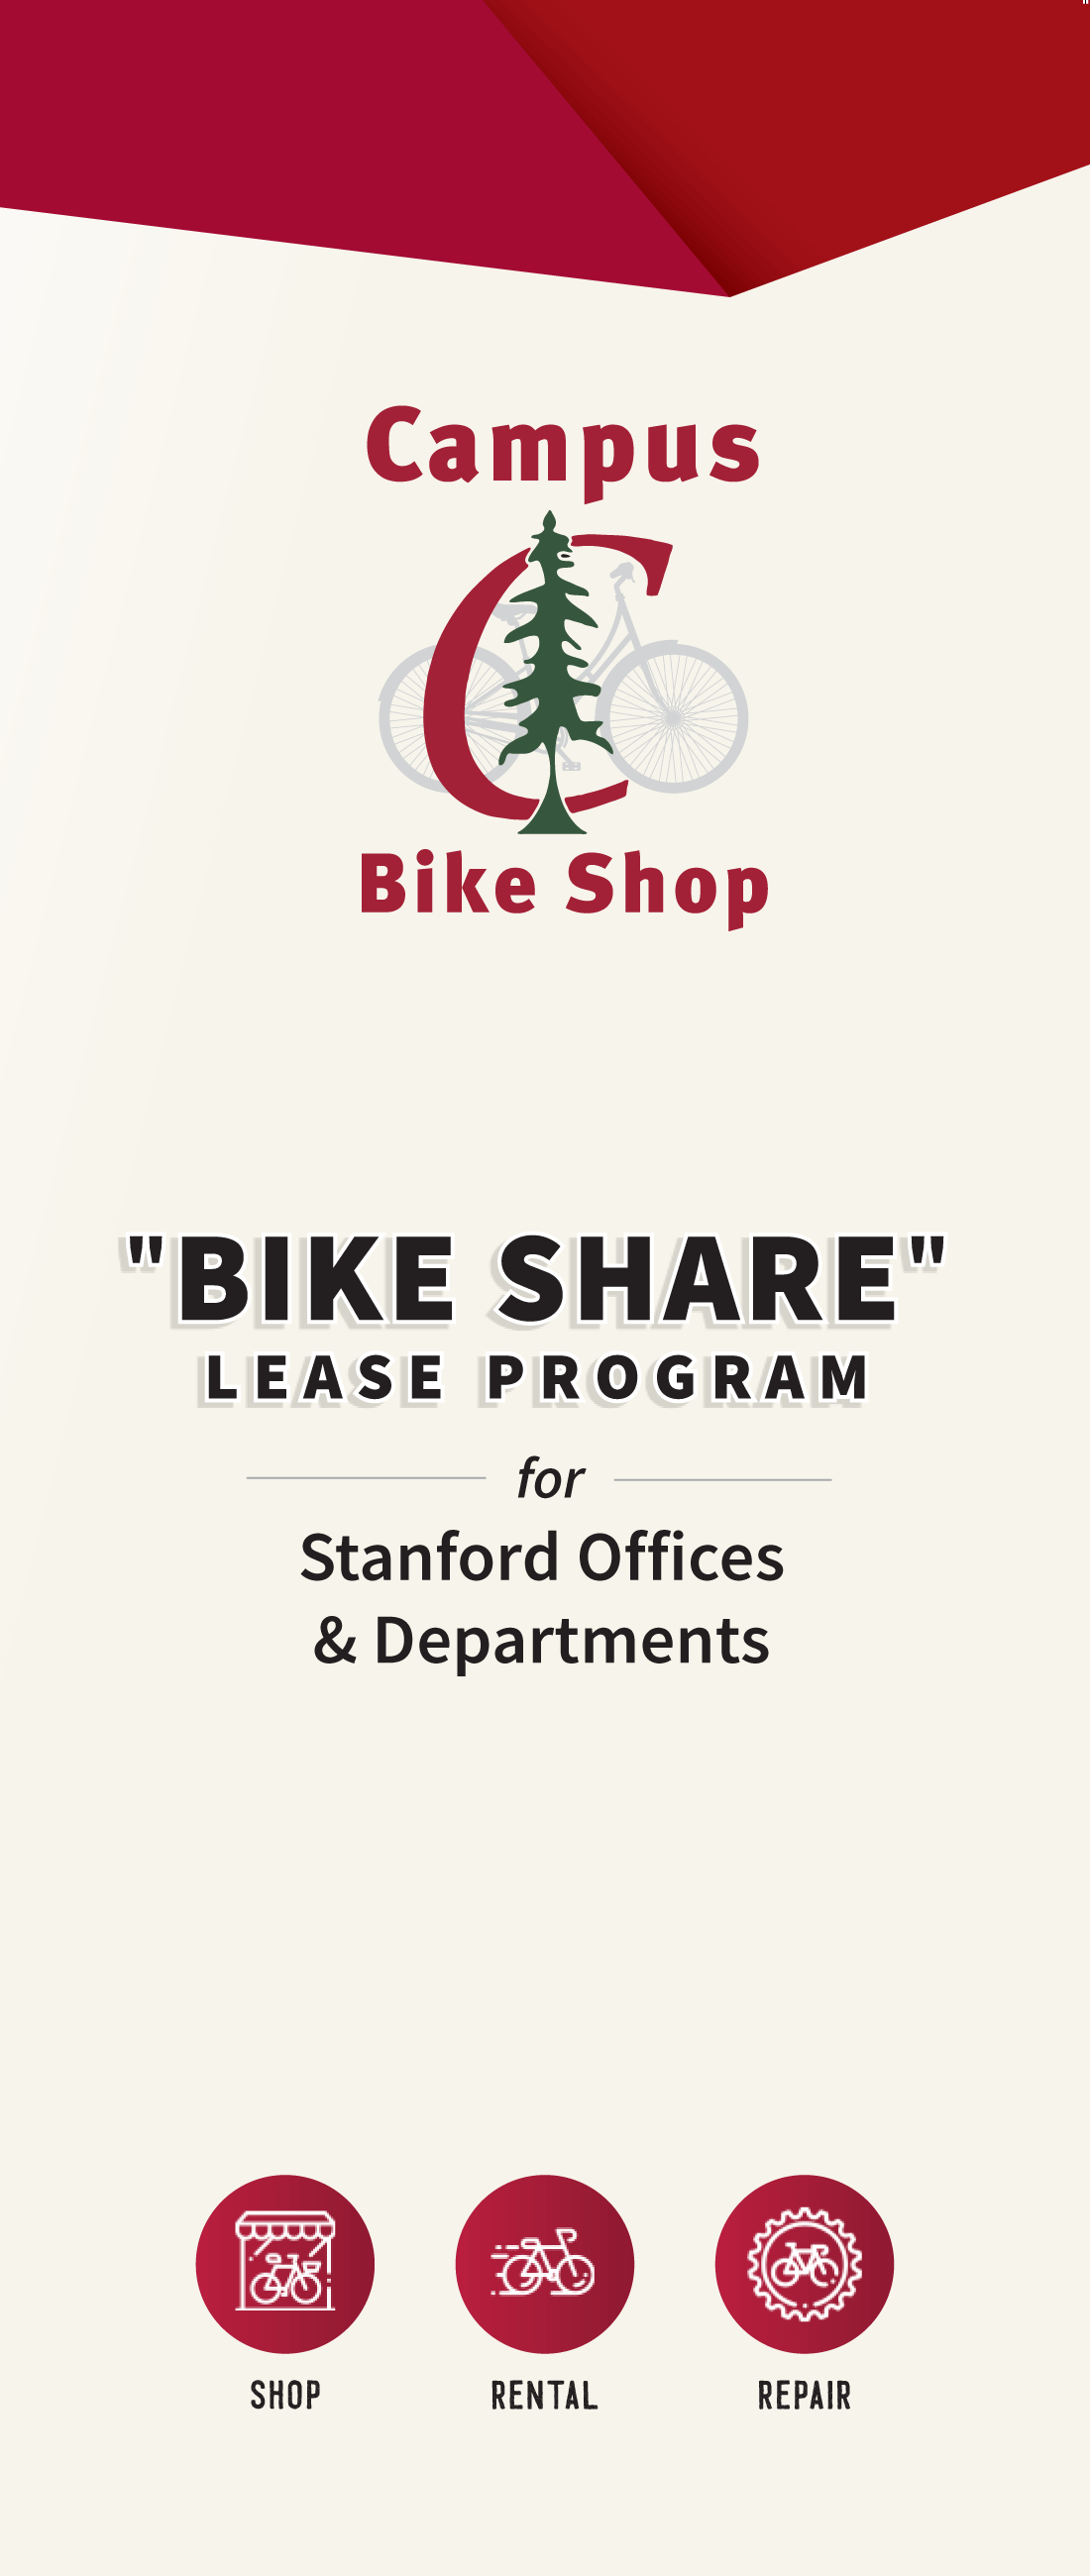 Campus Bike Shop Bike Share Lease Program